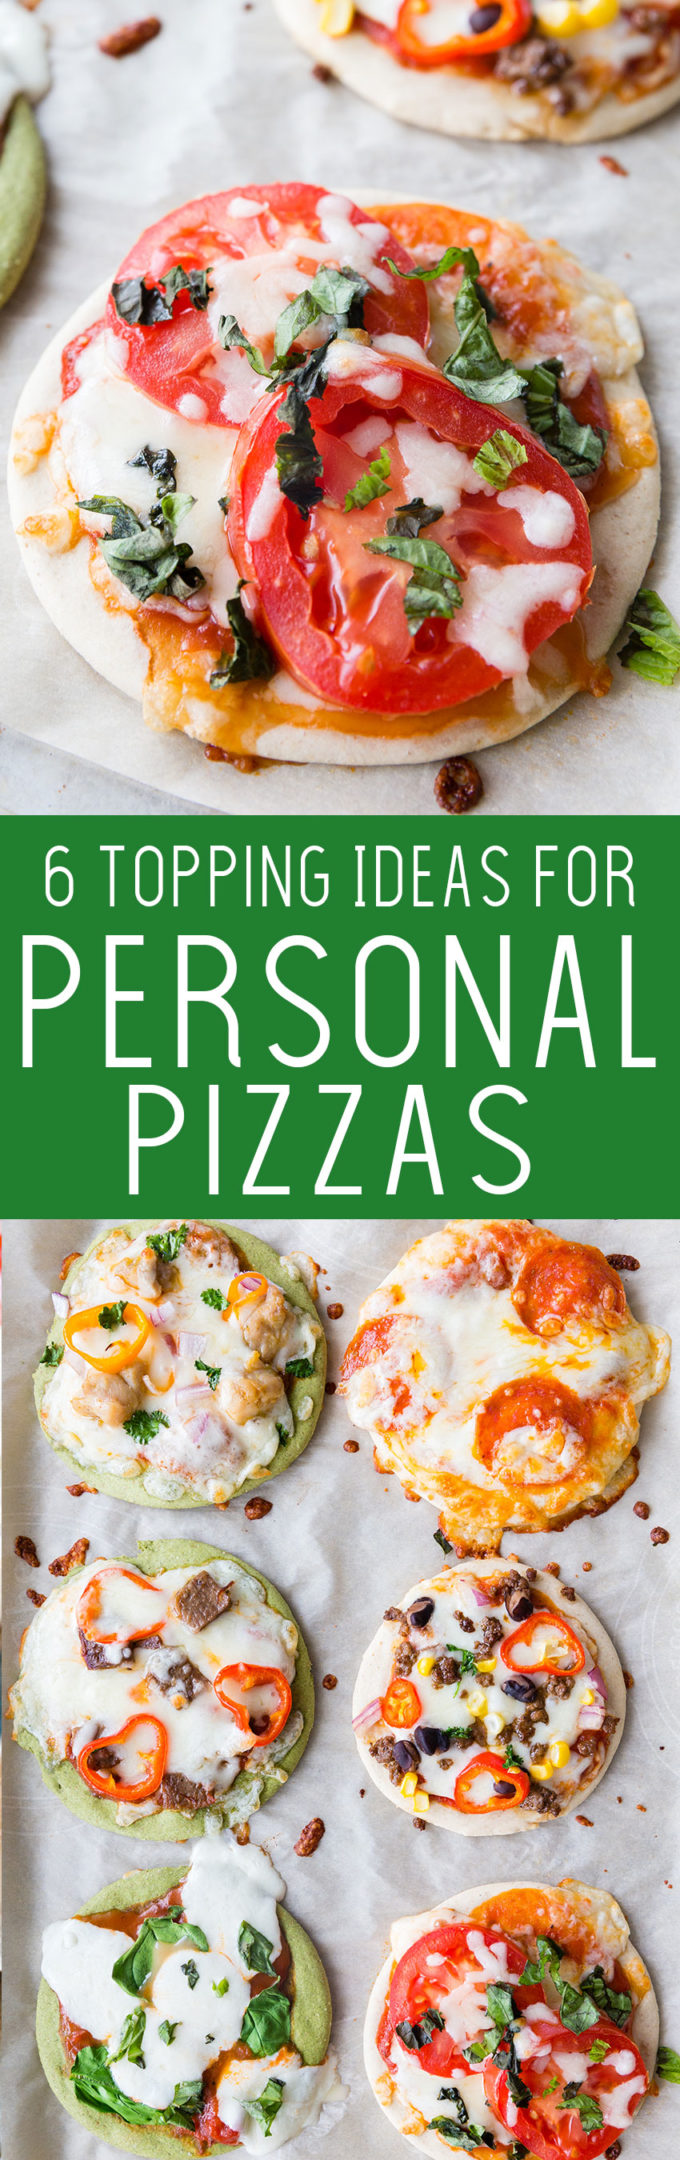 6 awesome topping ideas for personal pan pizzas, and an awesome machine to make them. This is the kitchen gadget you need!